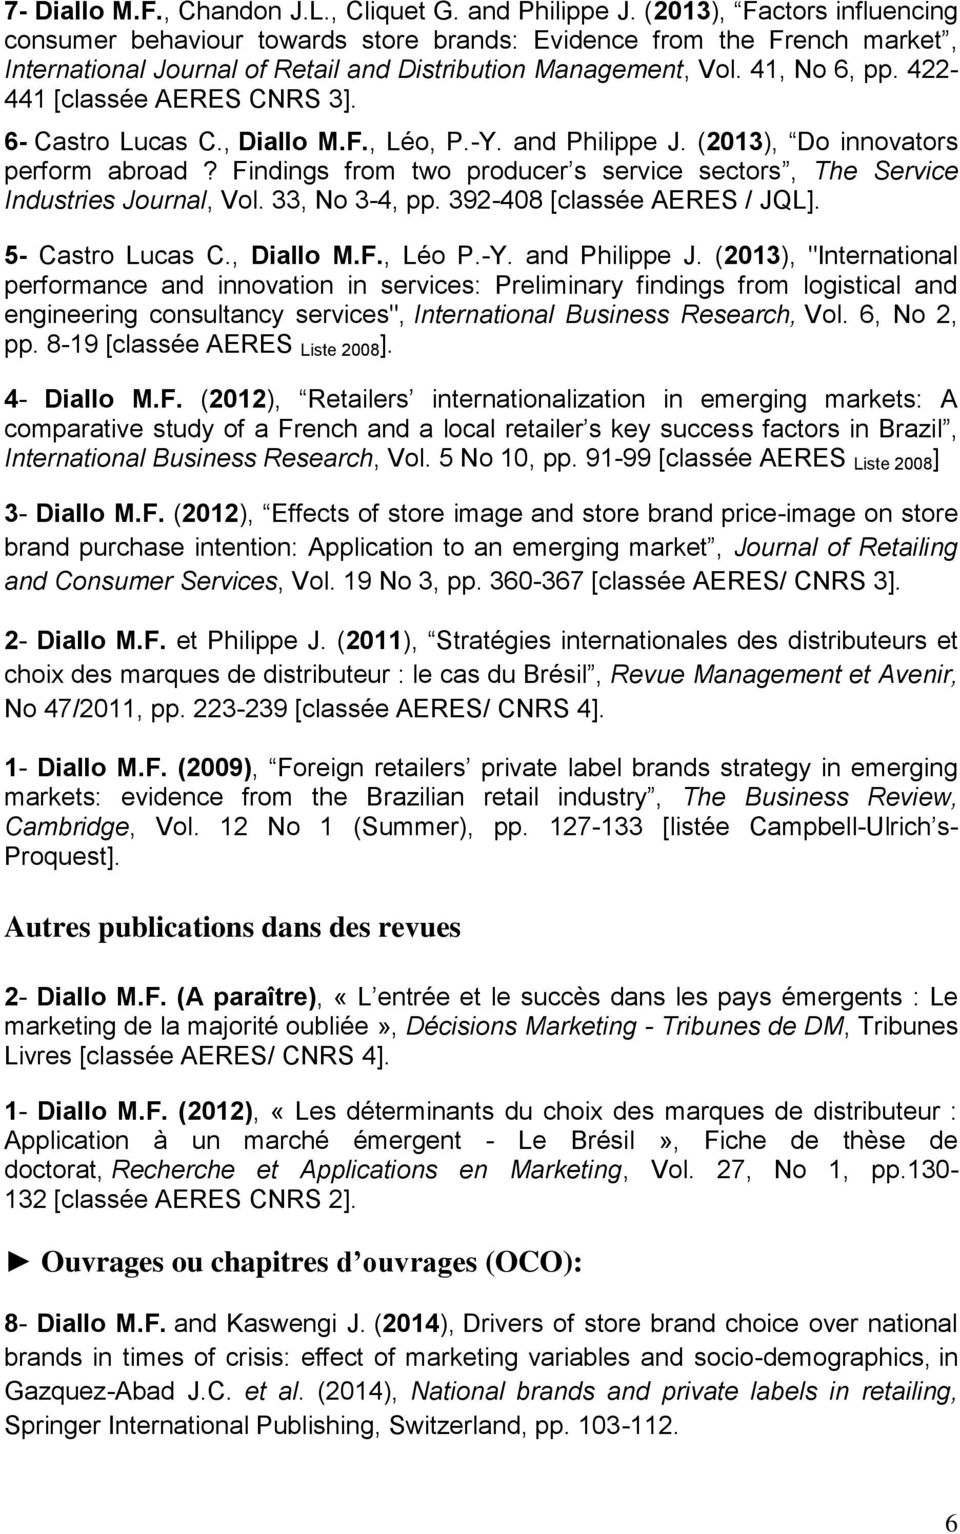 422-441 [classée AERES CNRS 3]. 6- Castro Lucas C., Diallo M.F., Léo, P.-Y. and Philippe J. (2013), Do innovators perform abroad?